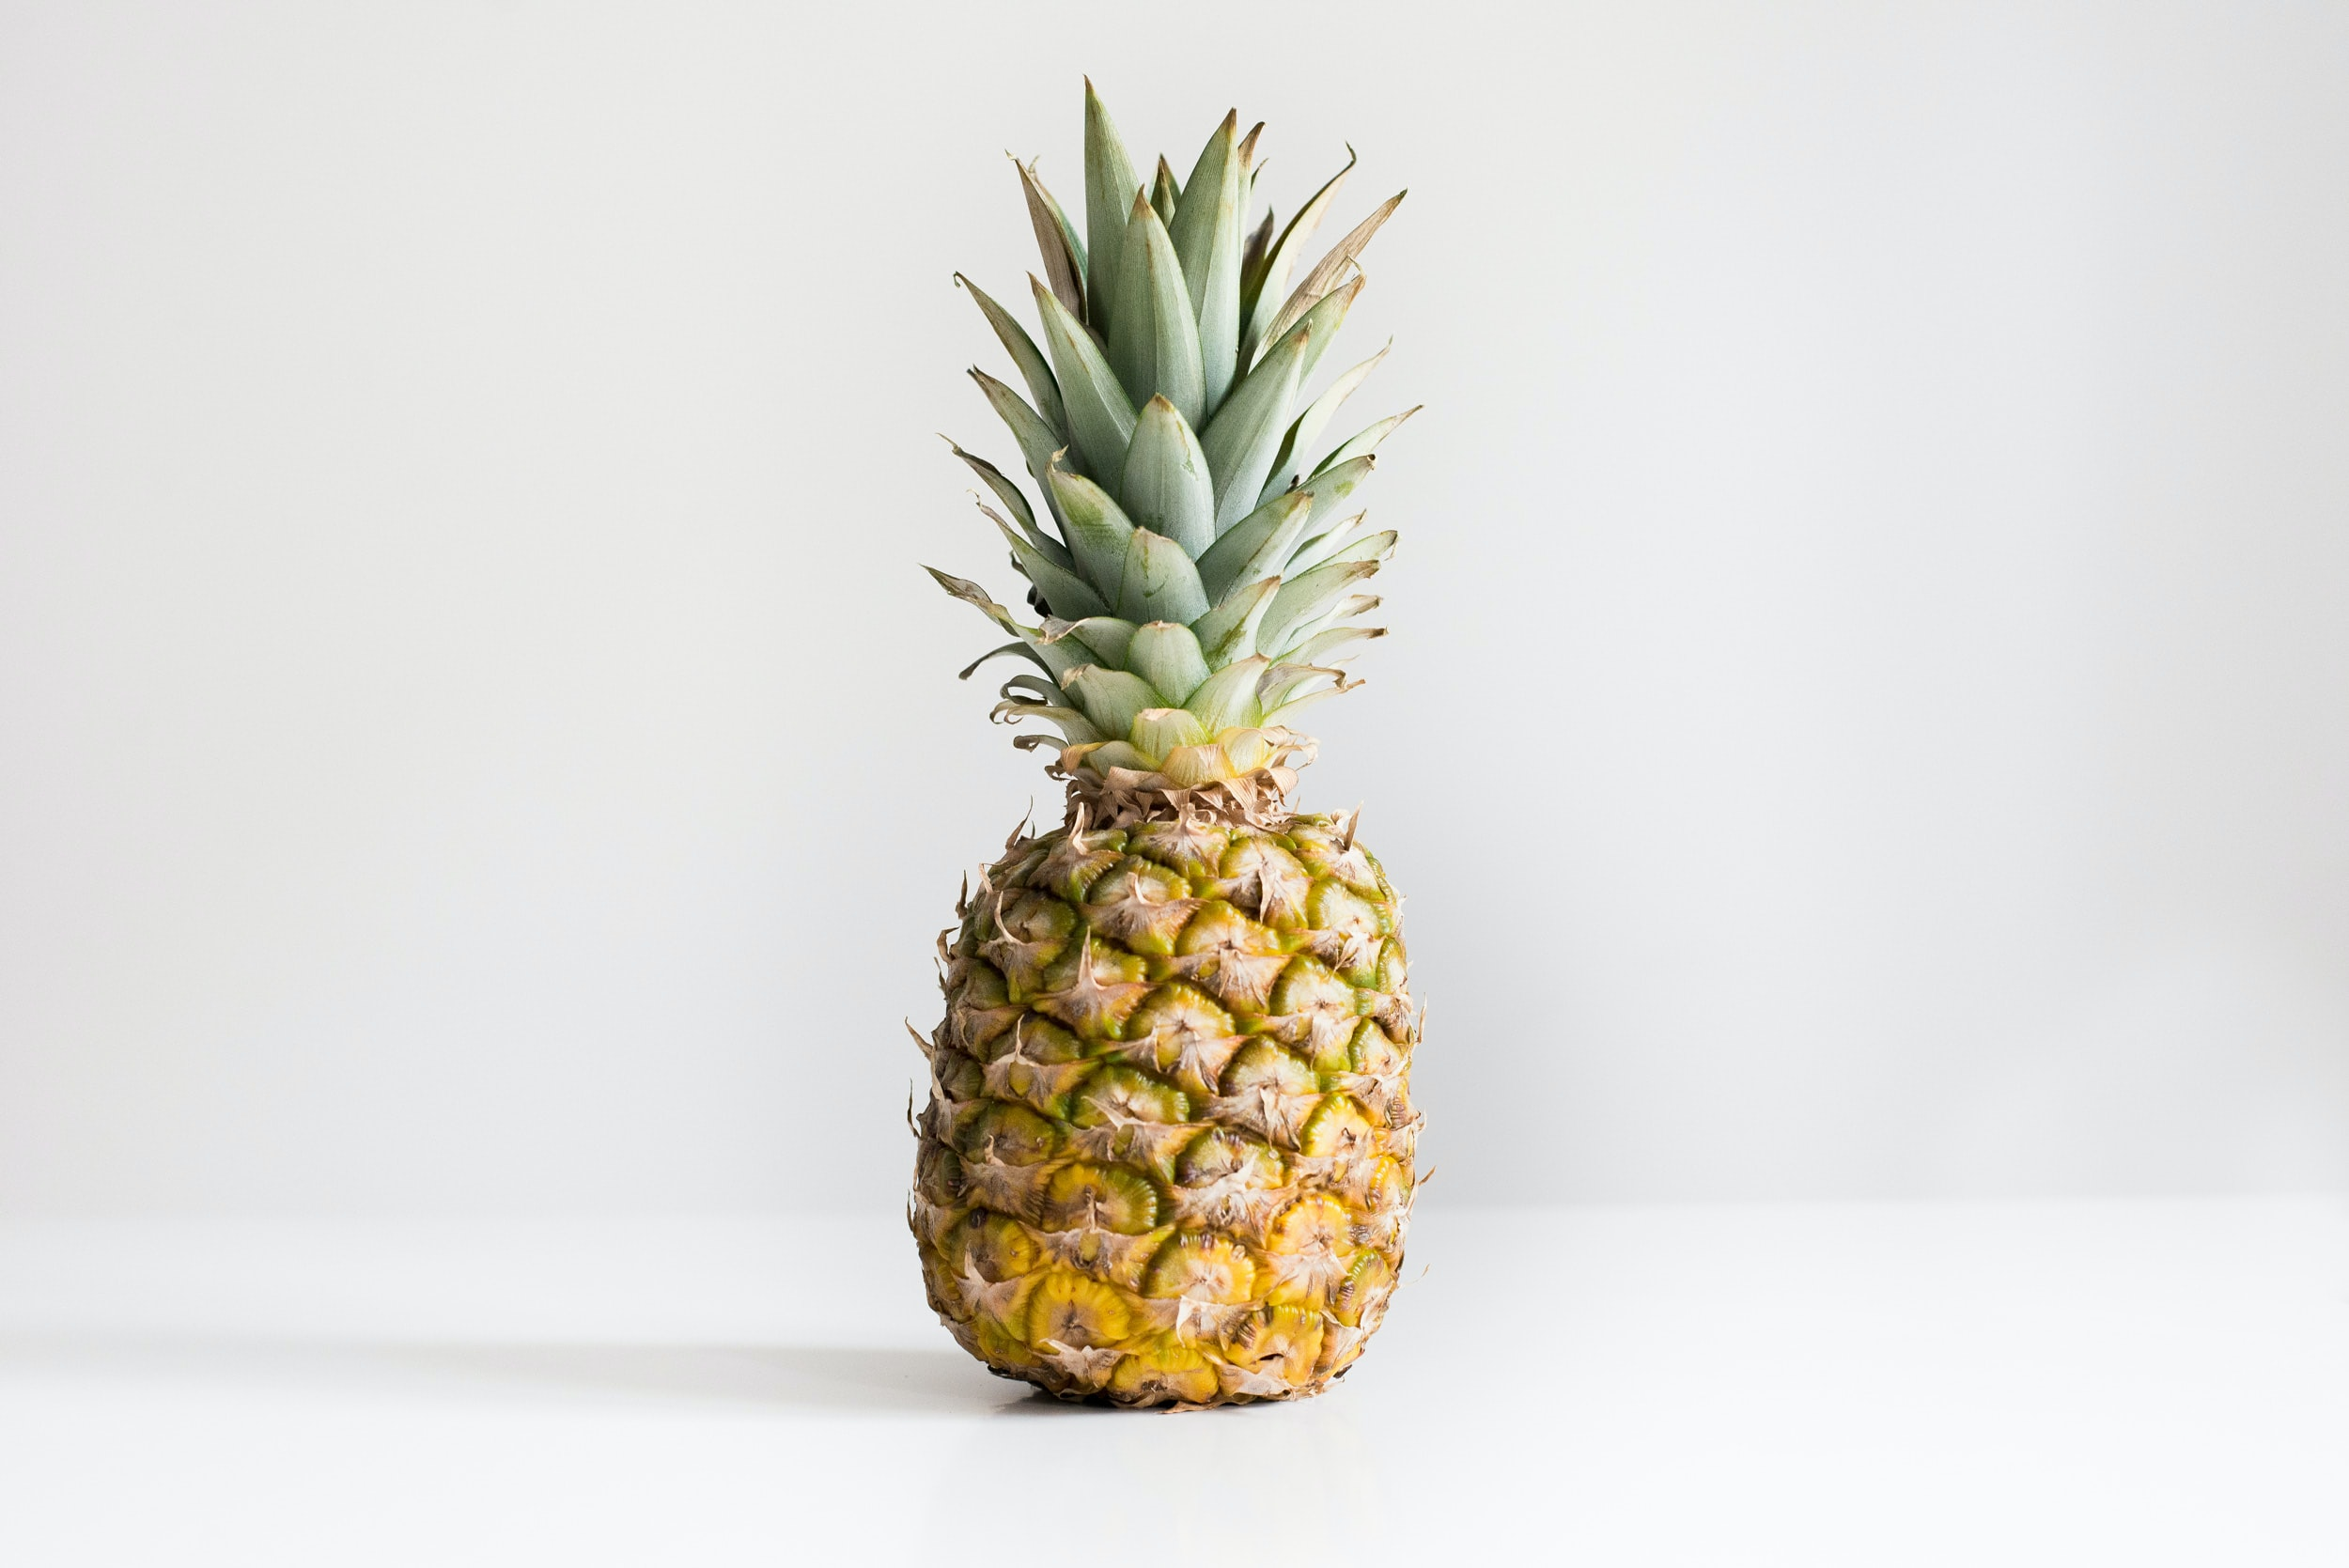 pineapple on white surface